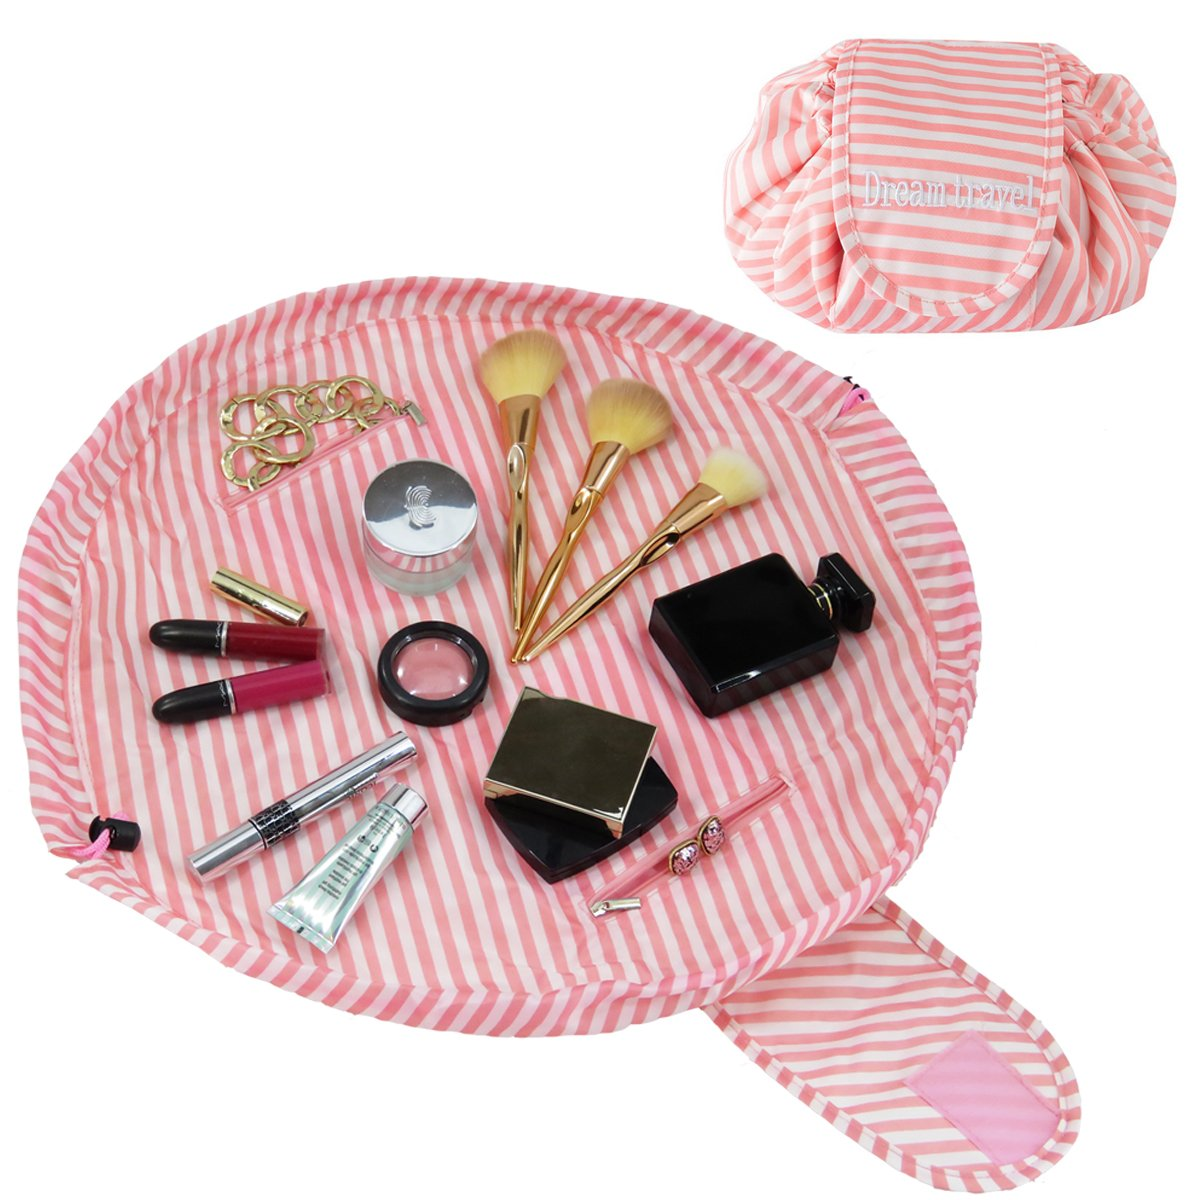 Drawstring Make-up Bag - Lay Flat Portable Cosmetic Organiser - Large Travel Size for Woman Or Man